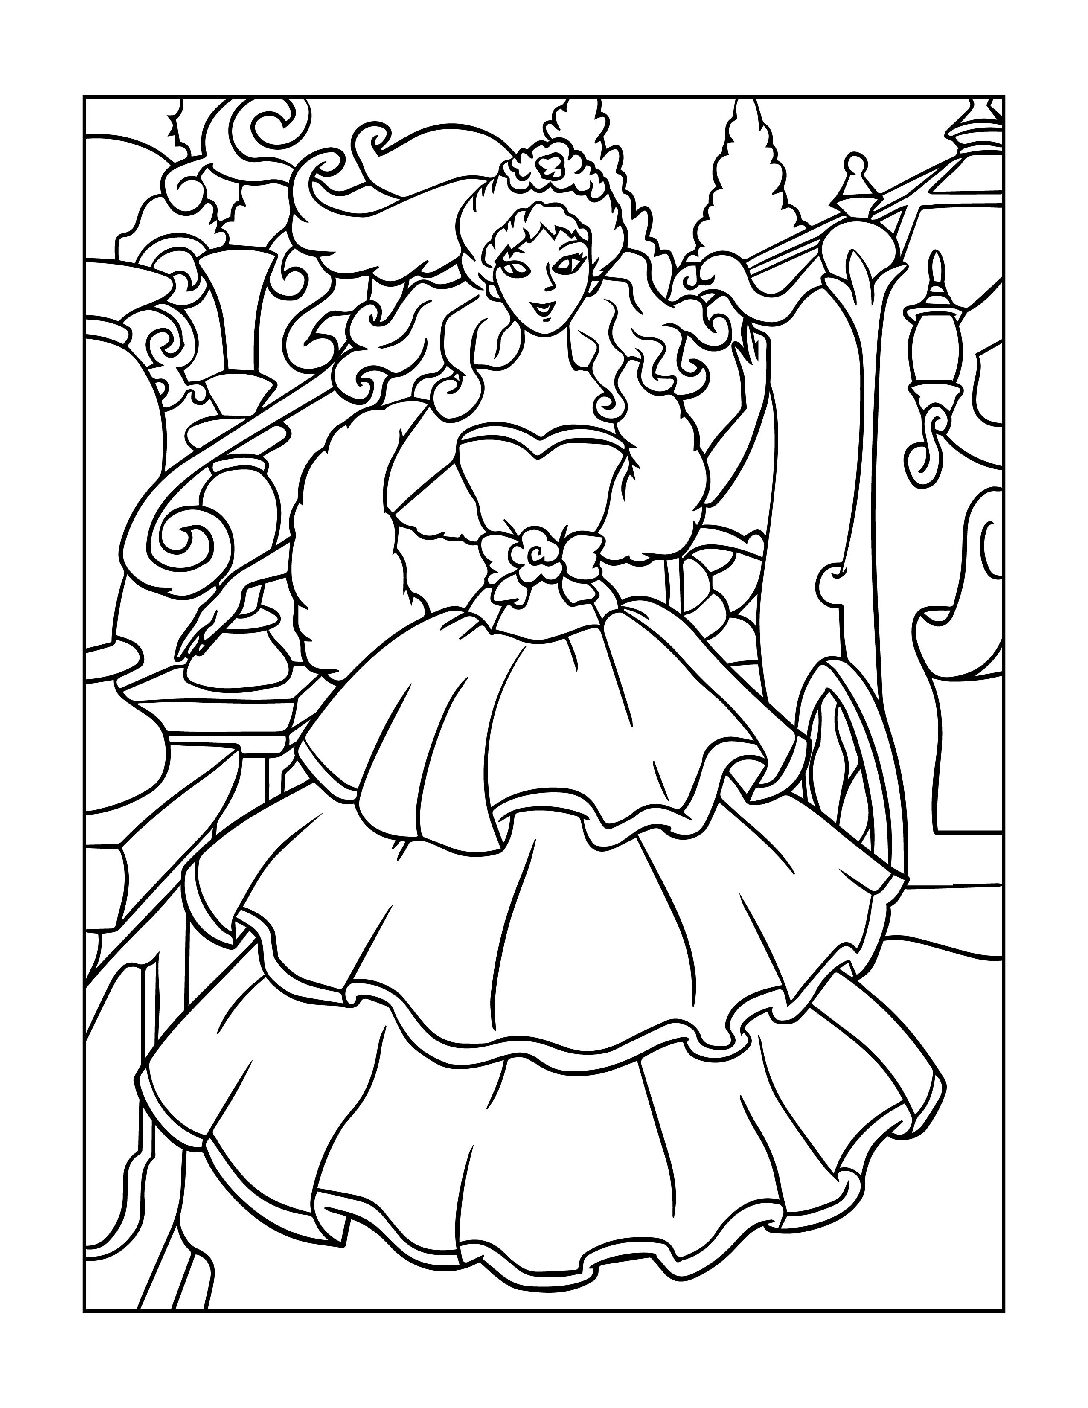 Coloring-Pages-Princess-20-01-pdf Free Printable Princesses Colouring Pages